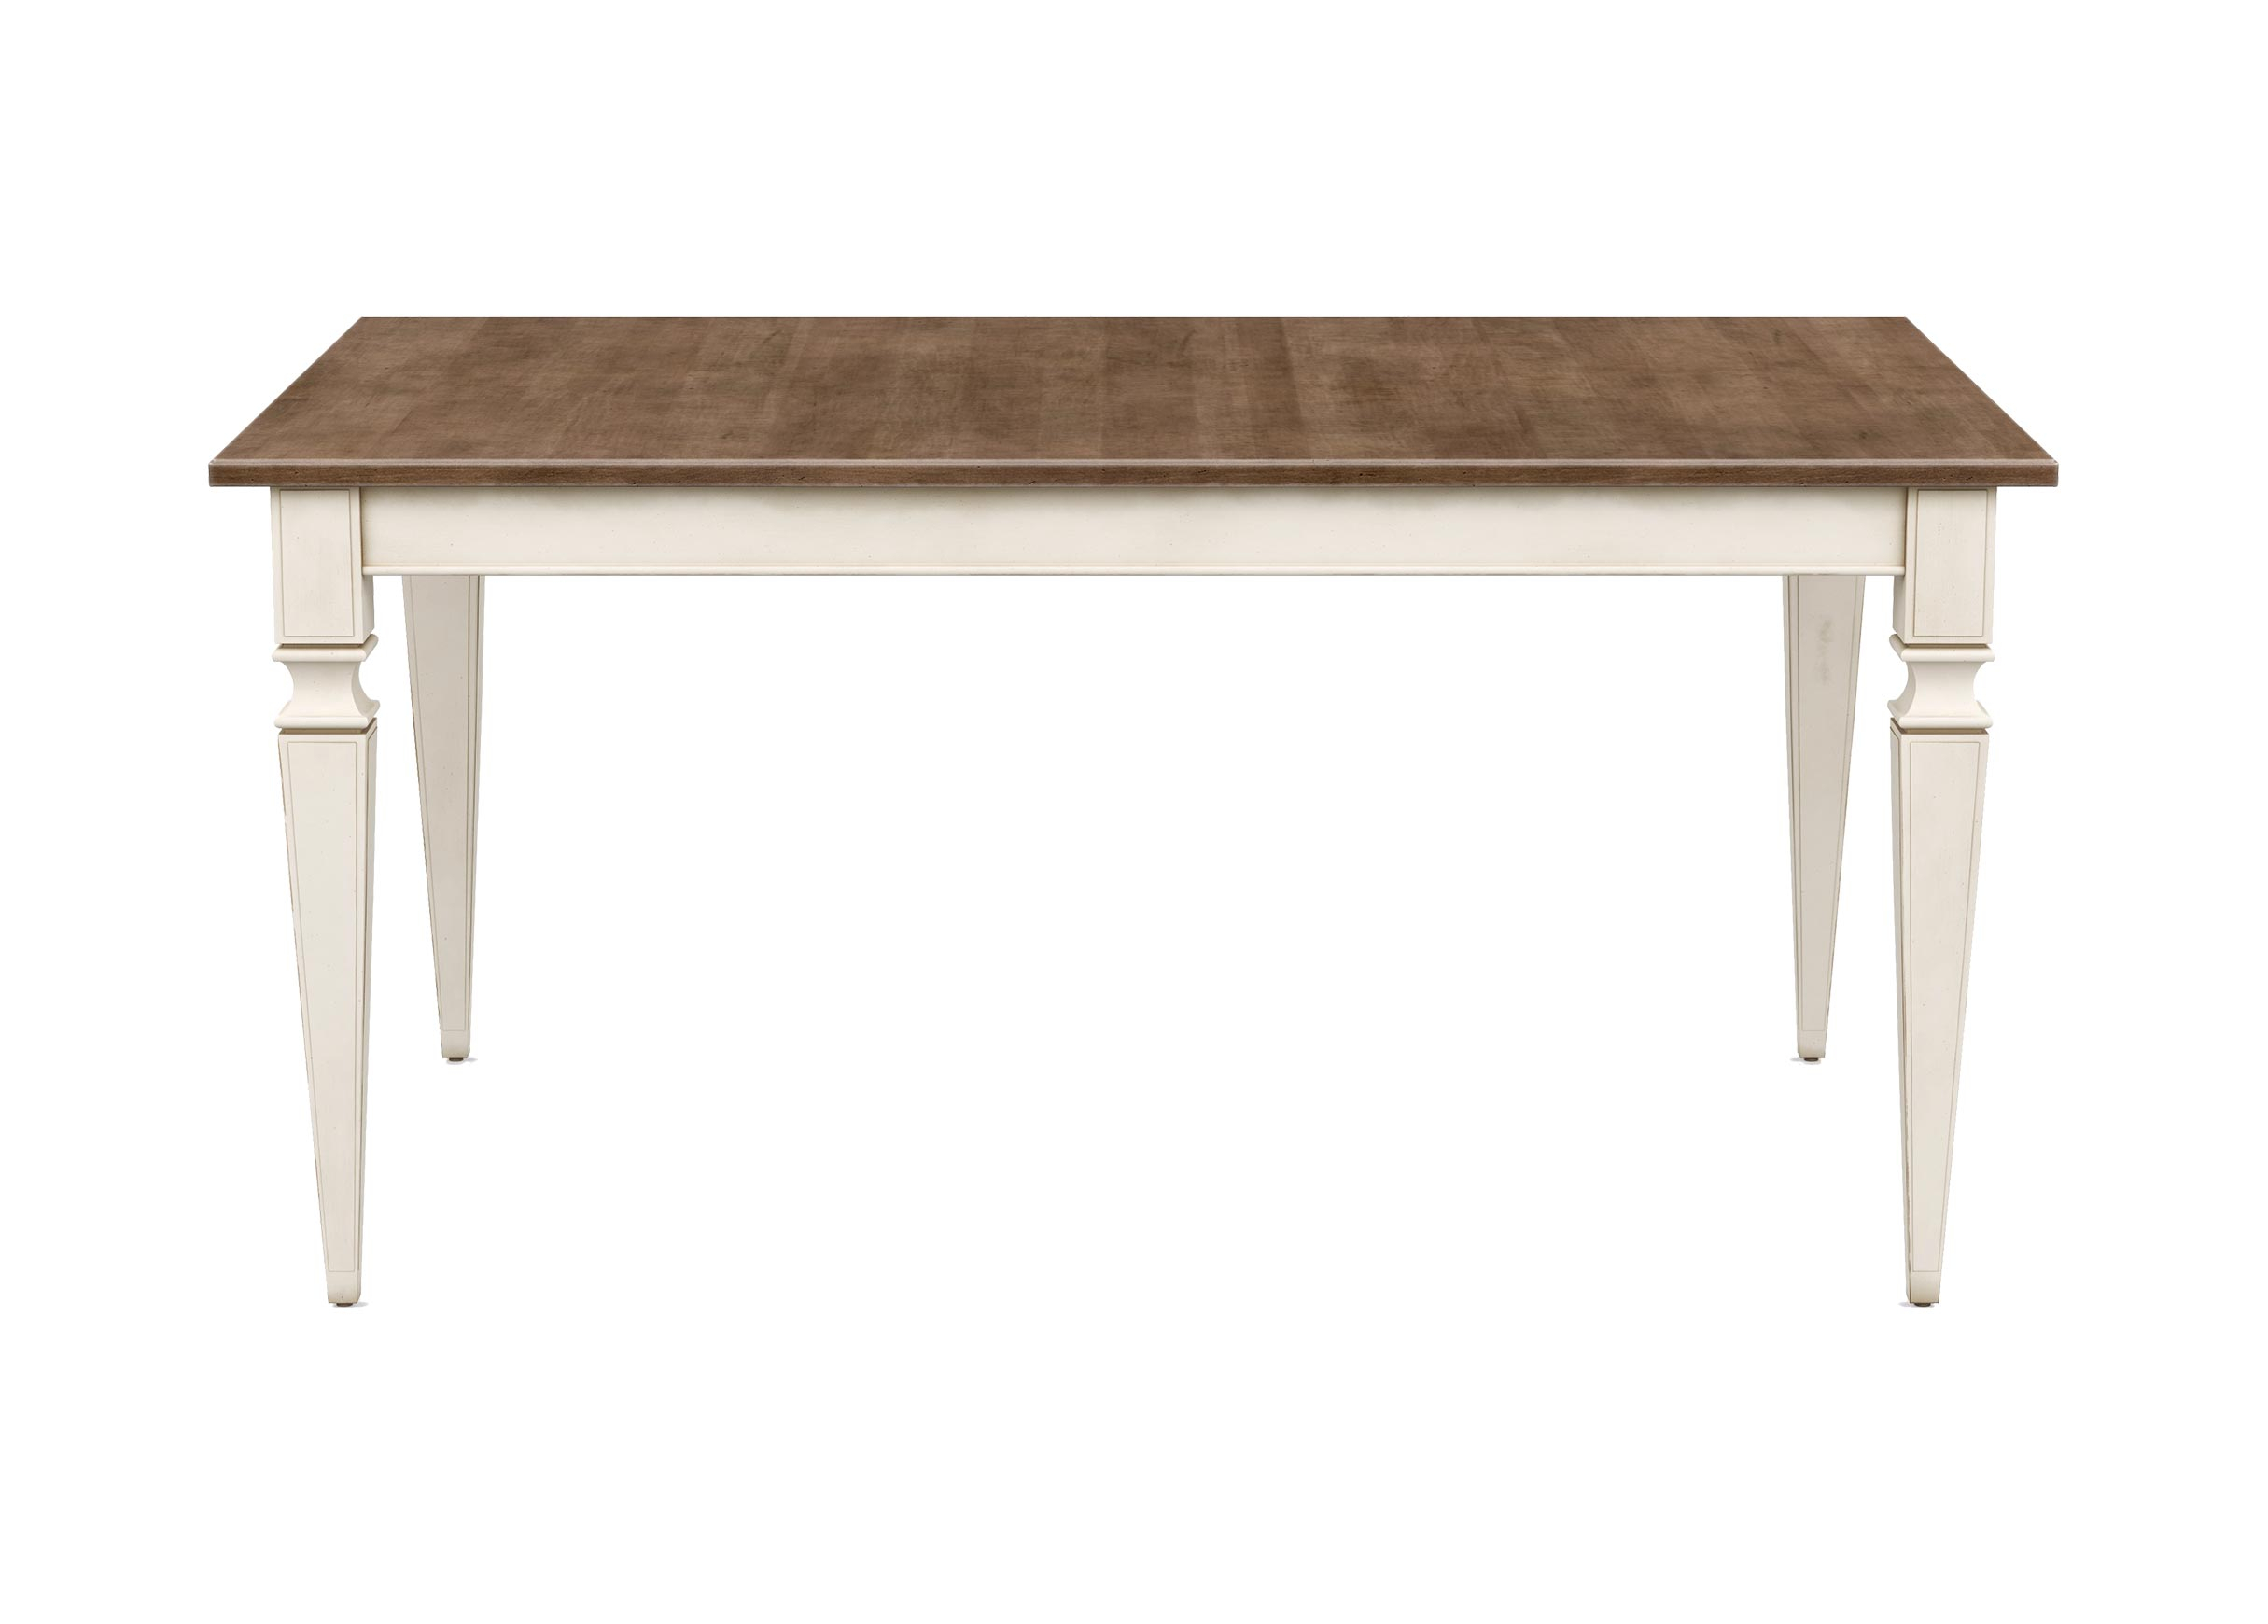 Avery Small Dining Table | Dining Tables | Ethan Allen Intended For Recent Avery Round Dining Tables (View 15 of 25)